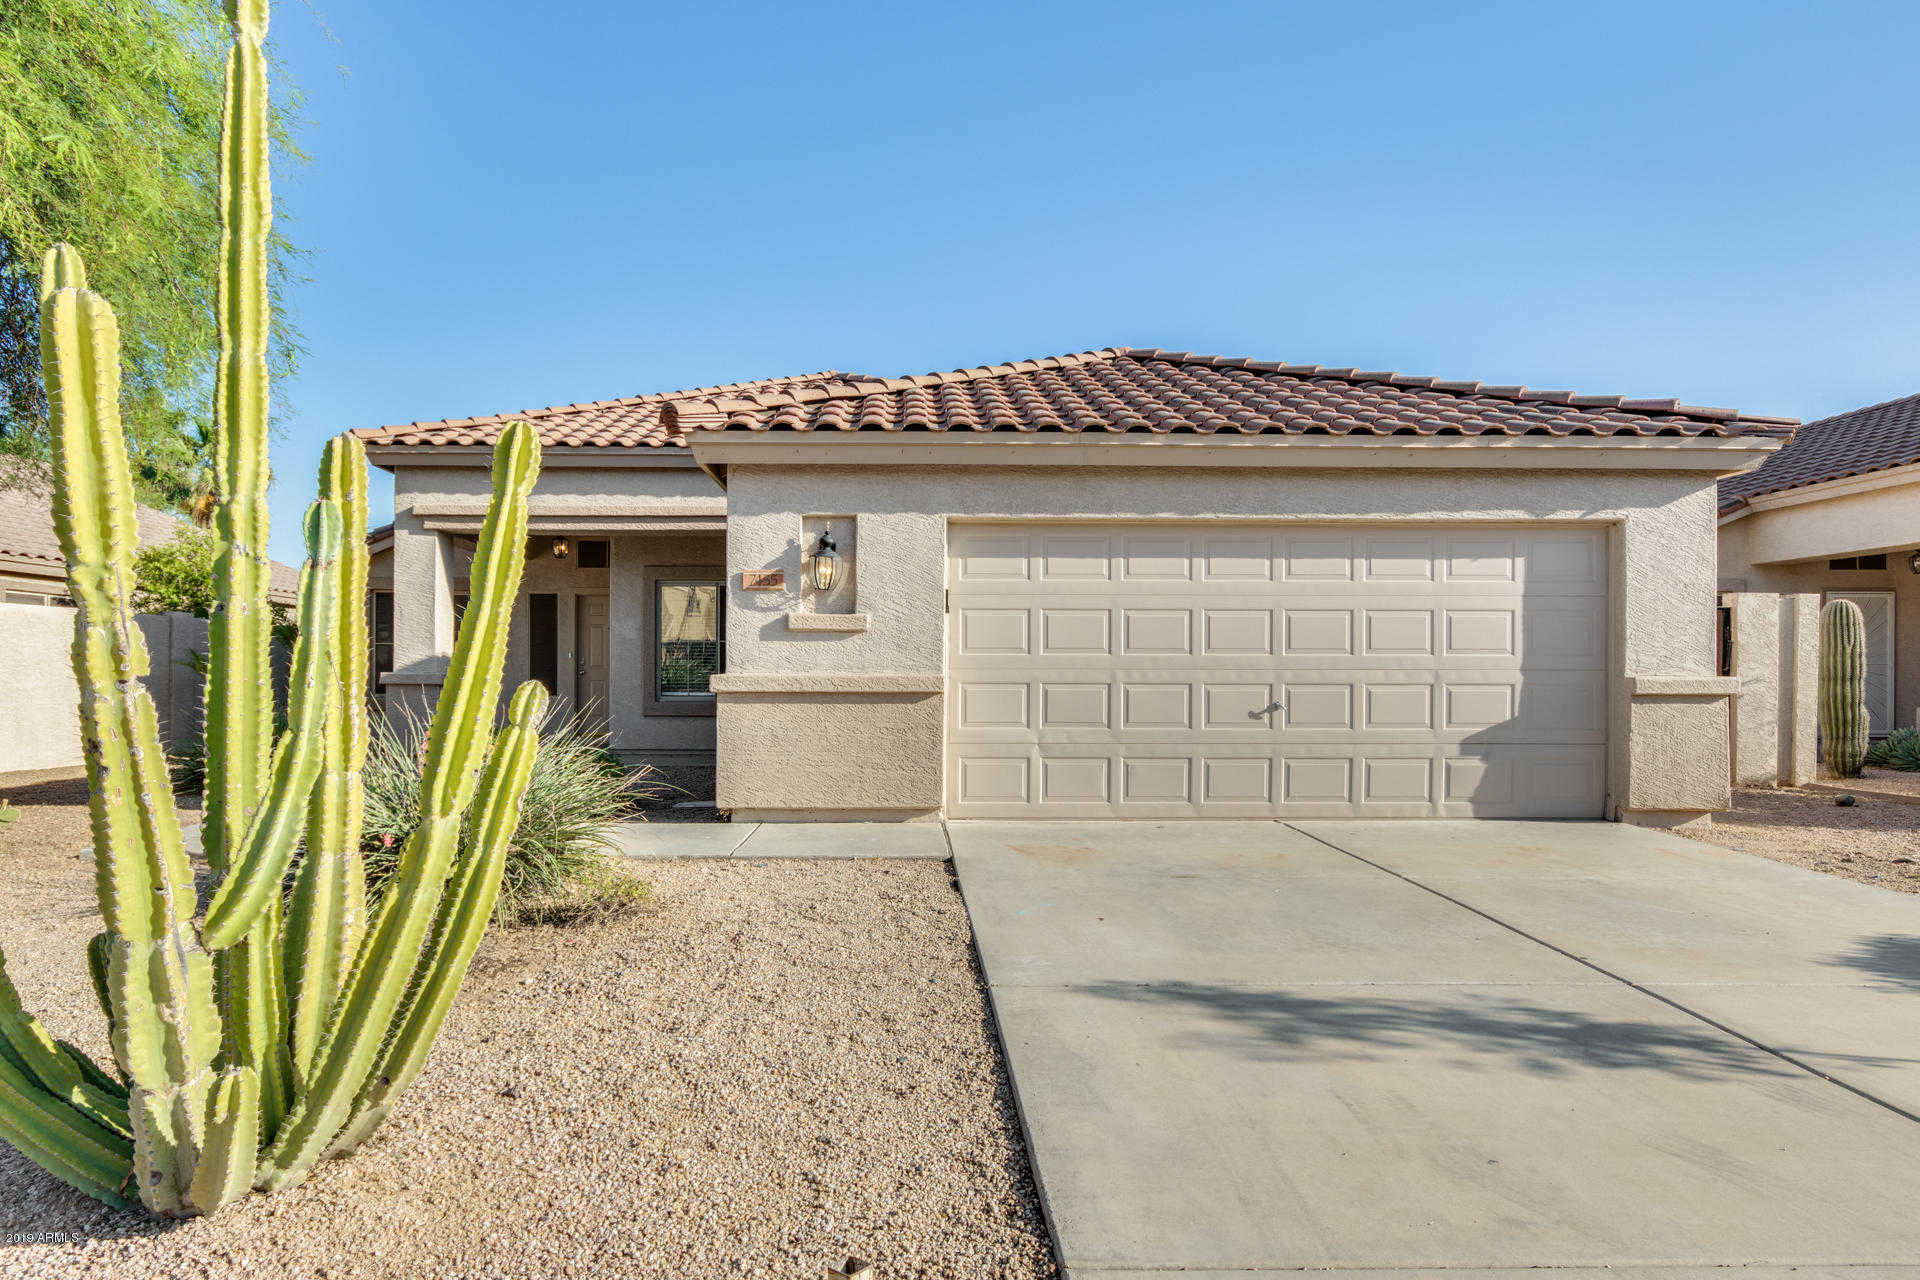 $323,000 - 4Br/2Ba - Home for Sale in Sienna 2, Glendale